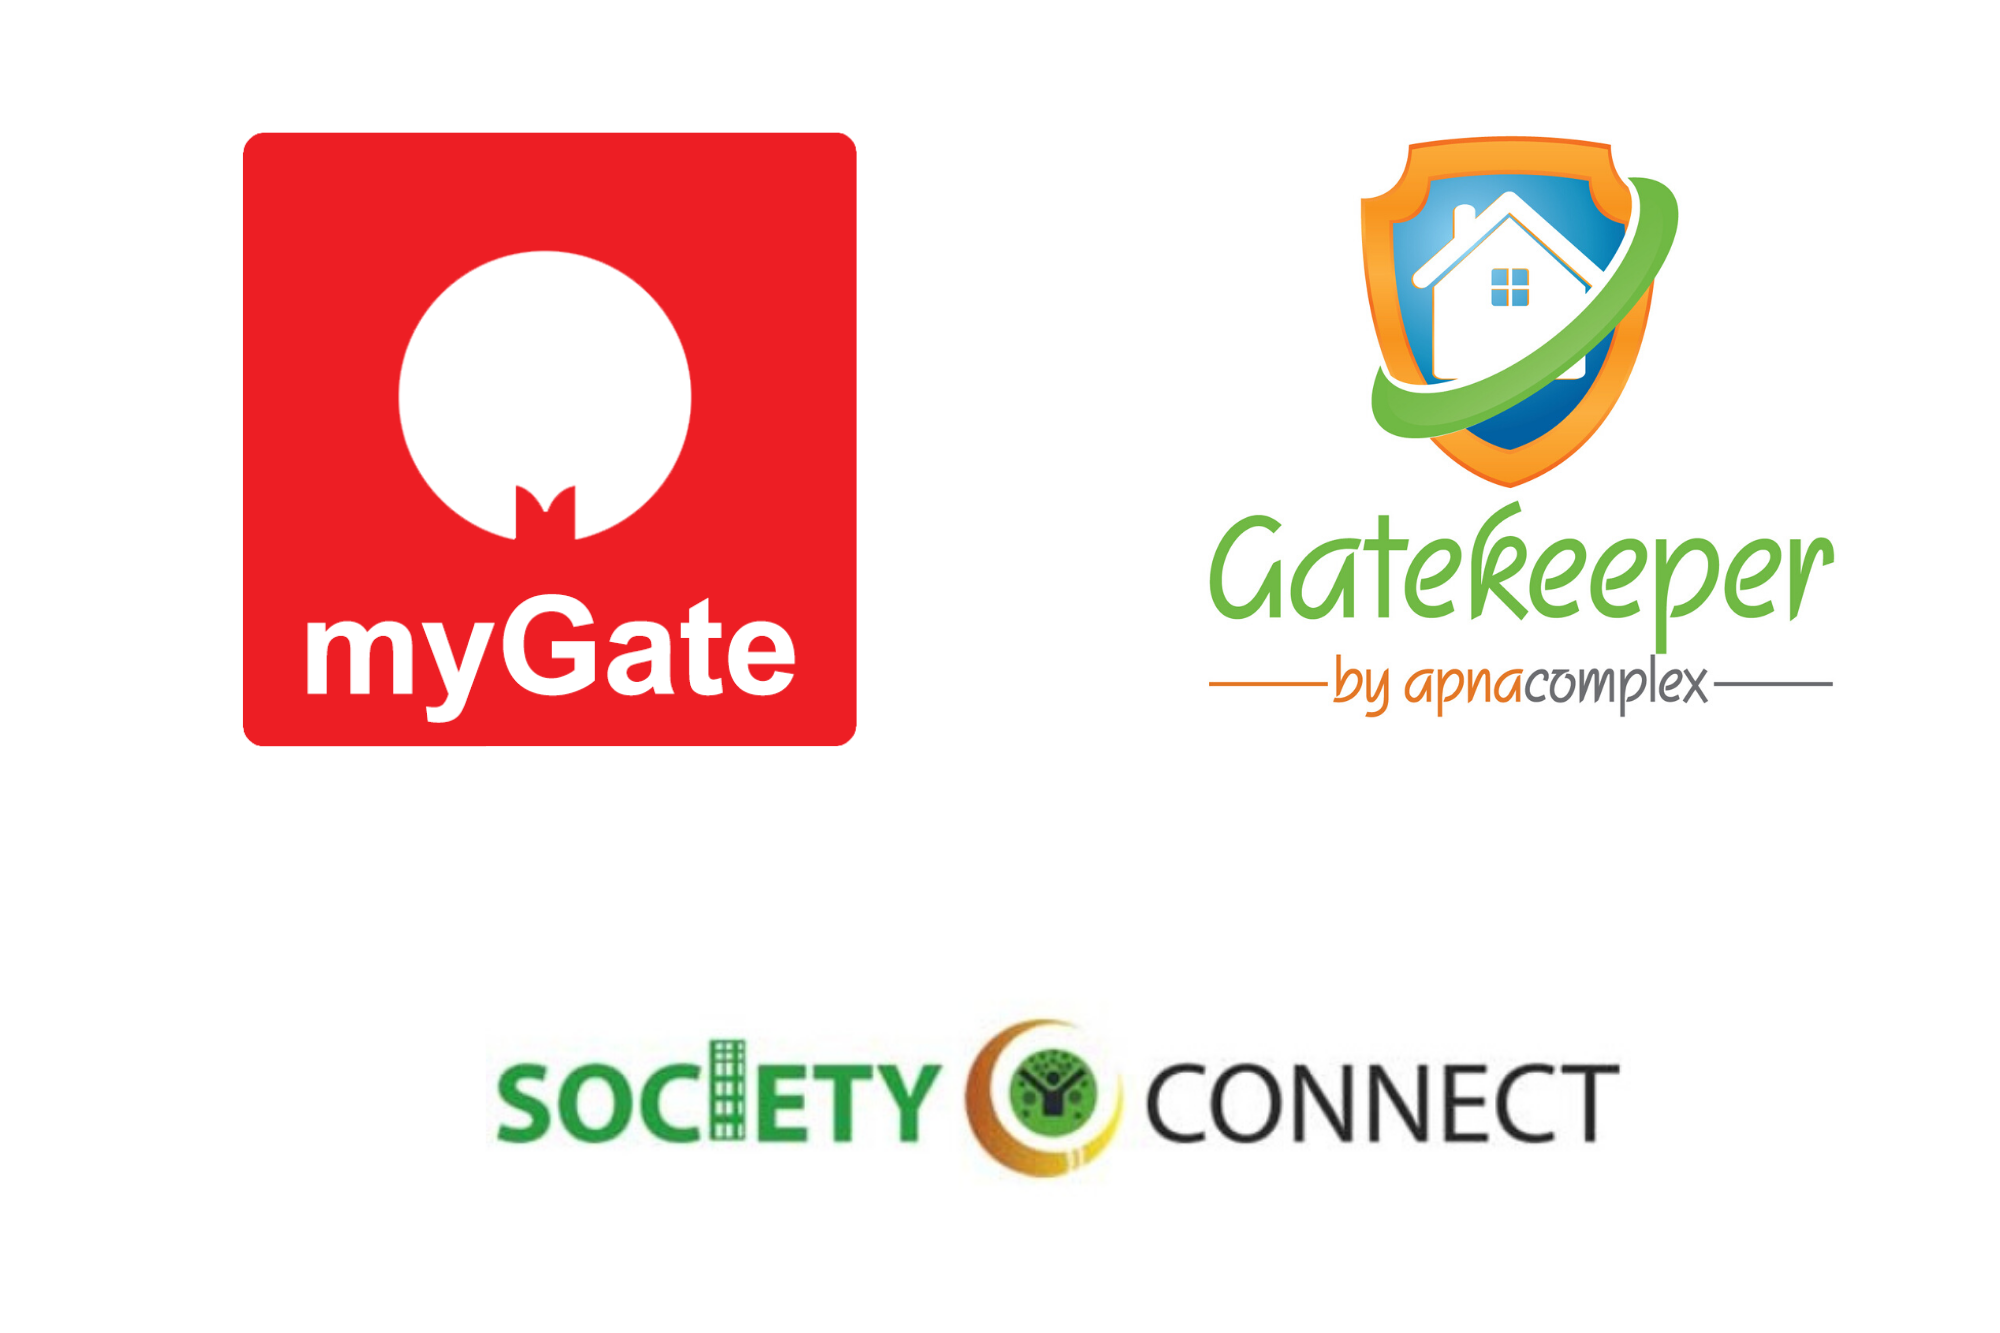 Safe And Convenient Living: Check Out These Apps Which Are Making Community Living Better